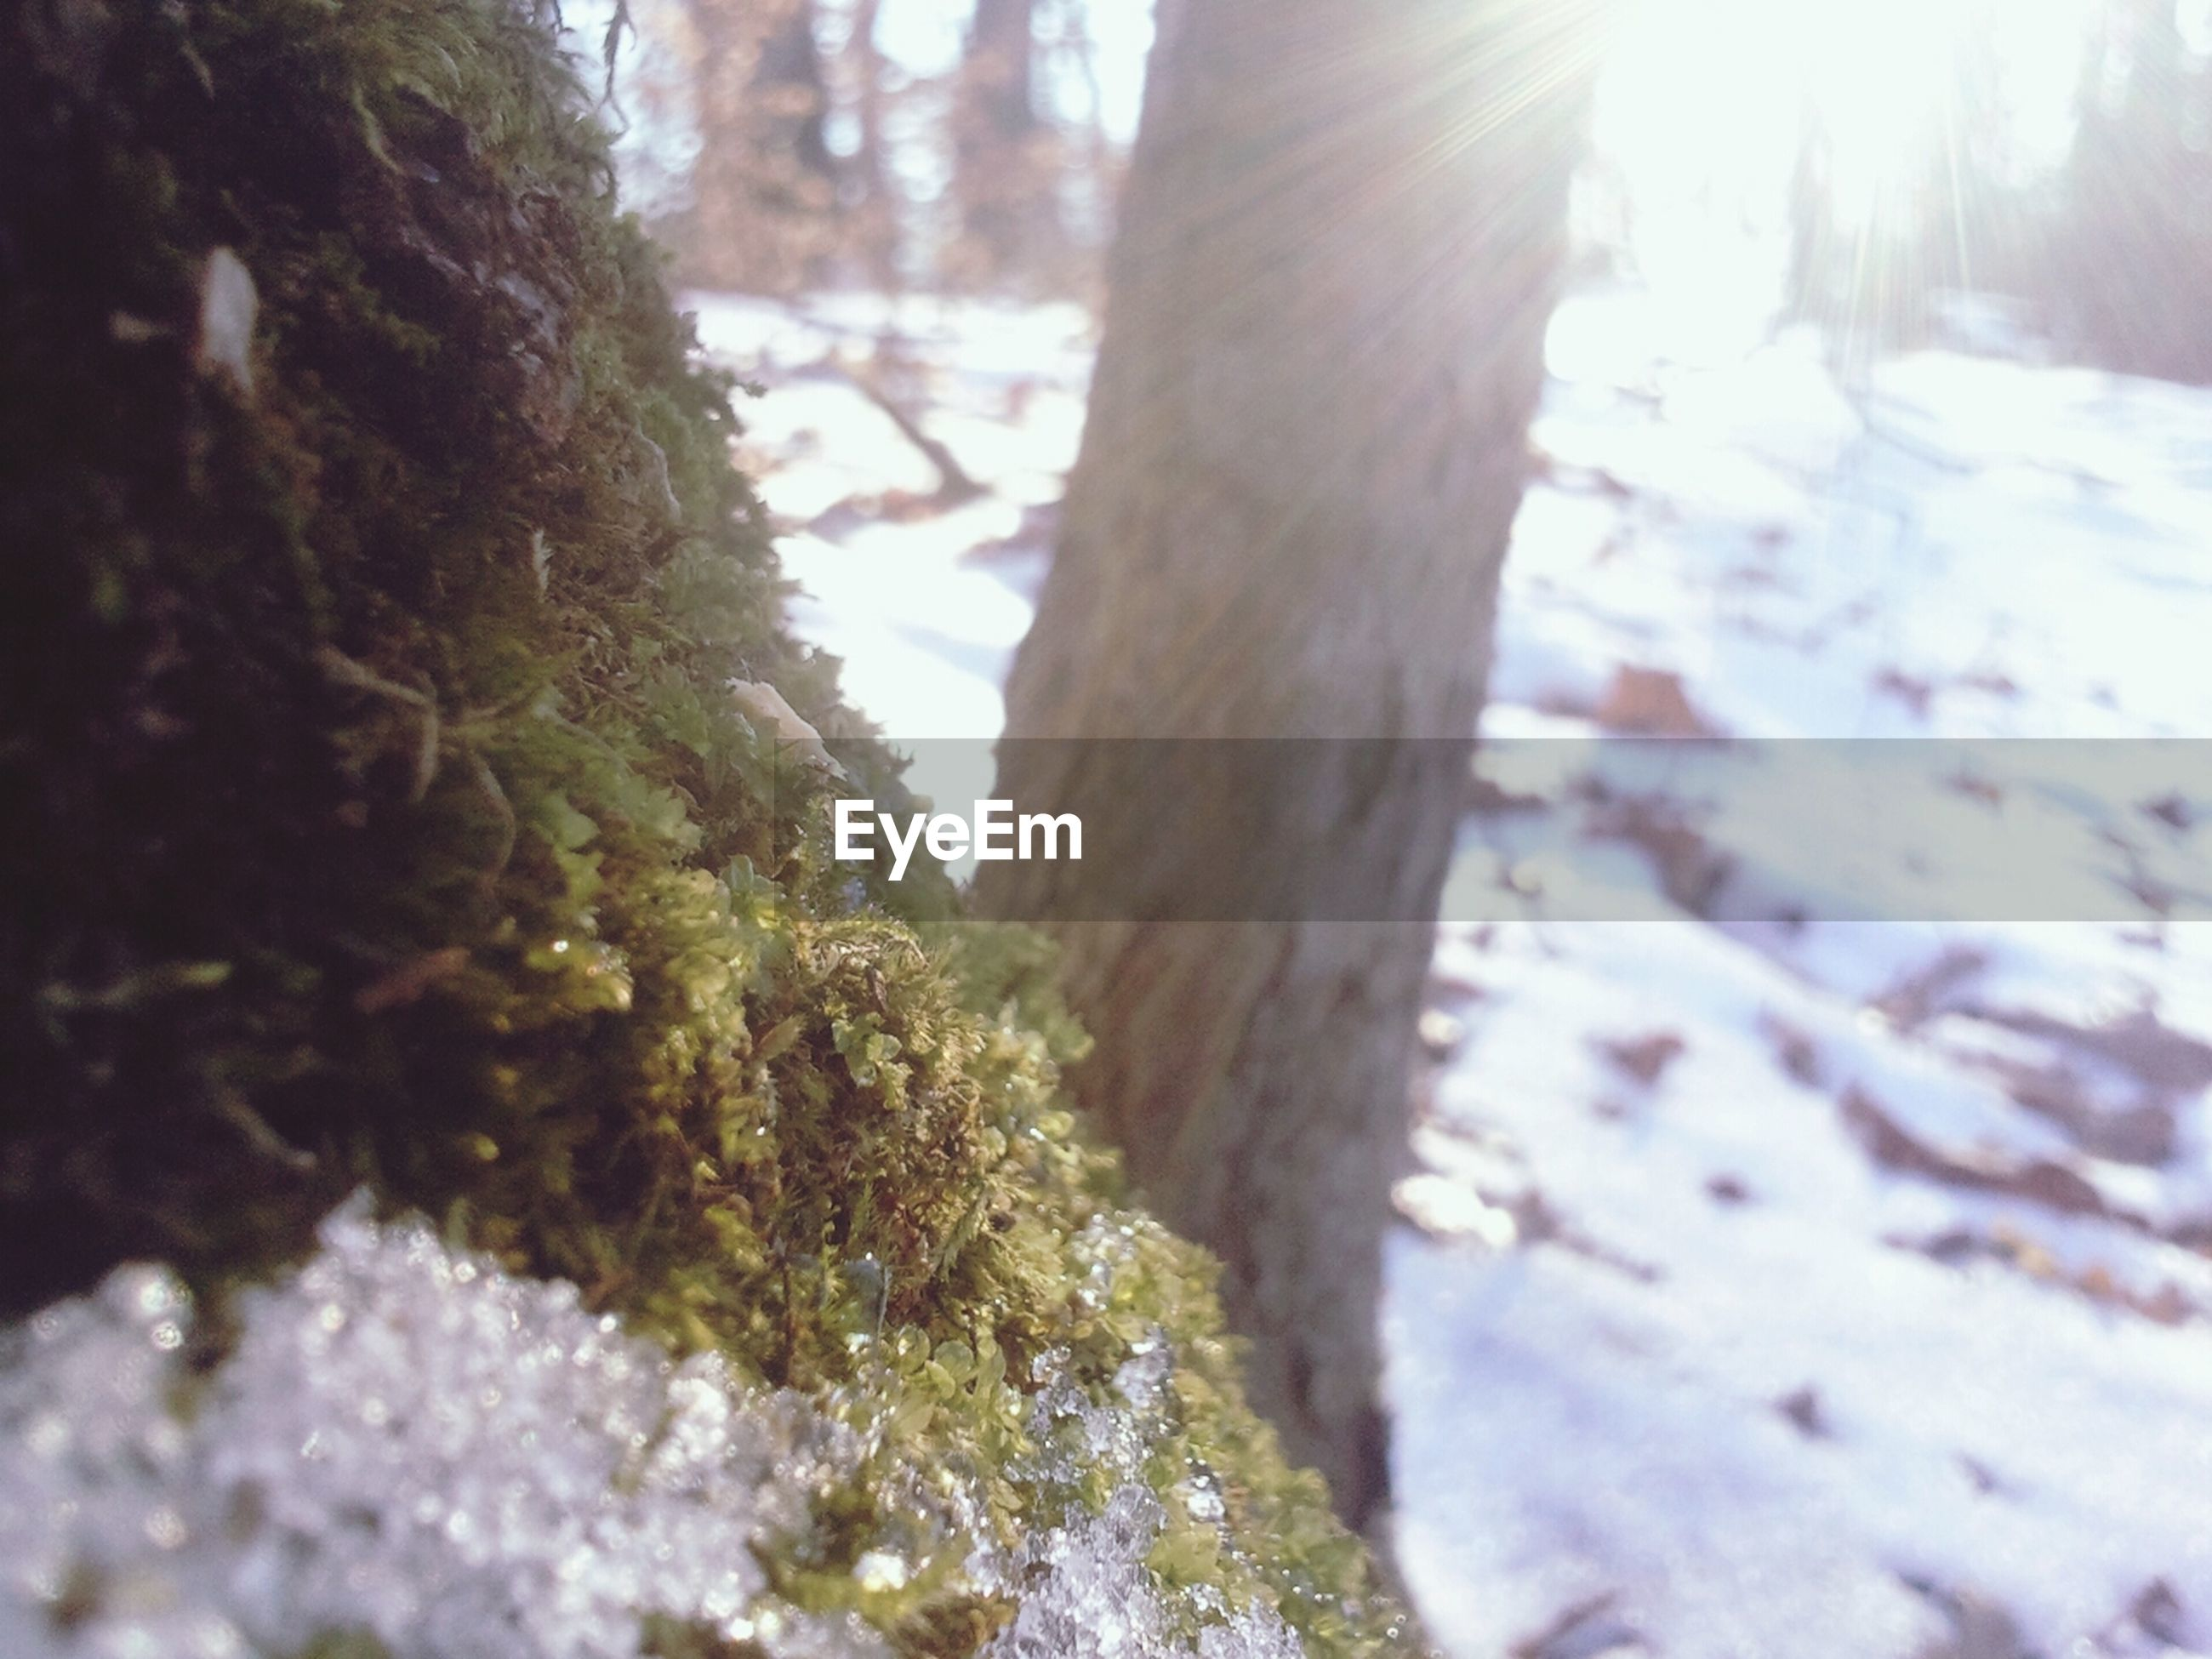 tree trunk, tree, sunlight, focus on foreground, nature, forest, close-up, lens flare, selective focus, winter, season, sunbeam, day, growth, tranquility, snow, outdoors, no people, beauty in nature, cold temperature